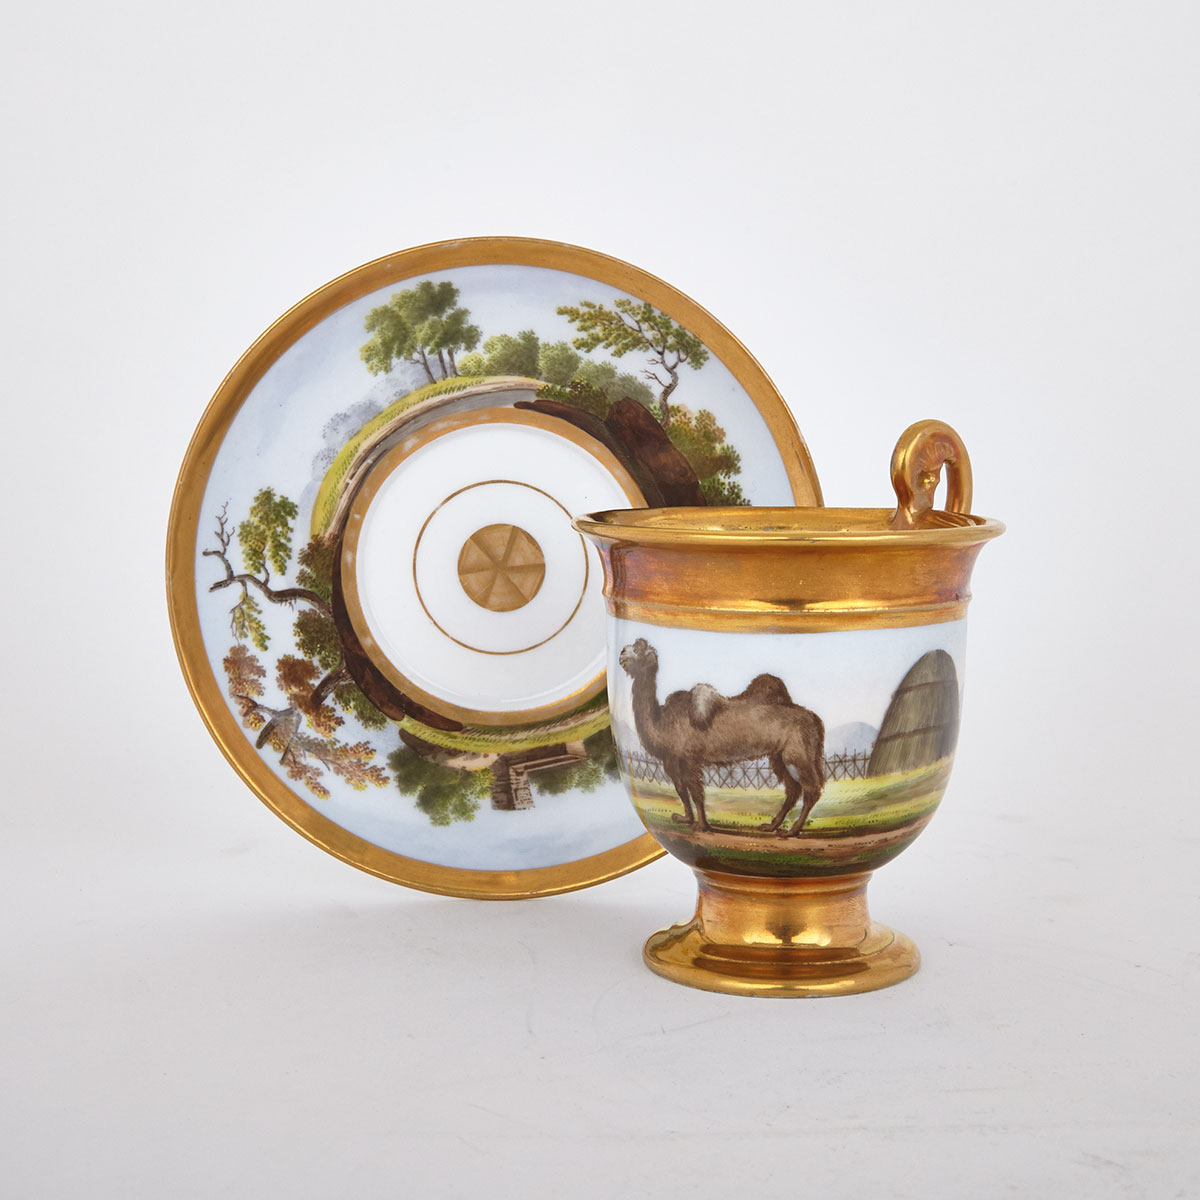 Schoelcher, Paris Porcelain Zoological Cup and Saucer, c.1840